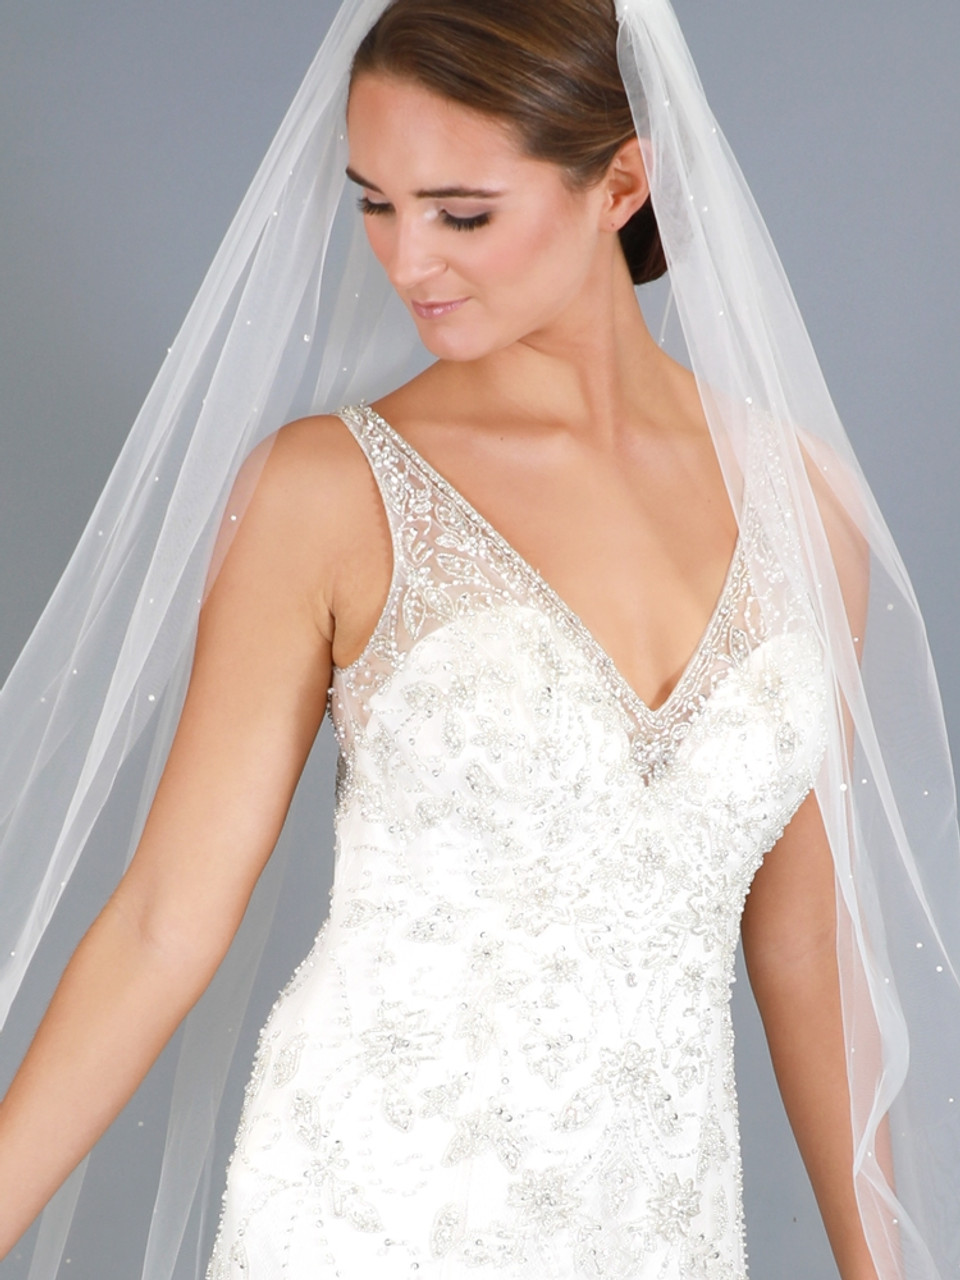 Single Tier Shoulder Length Crystal Cut Edge Bridal Veil Available in white or ivory.